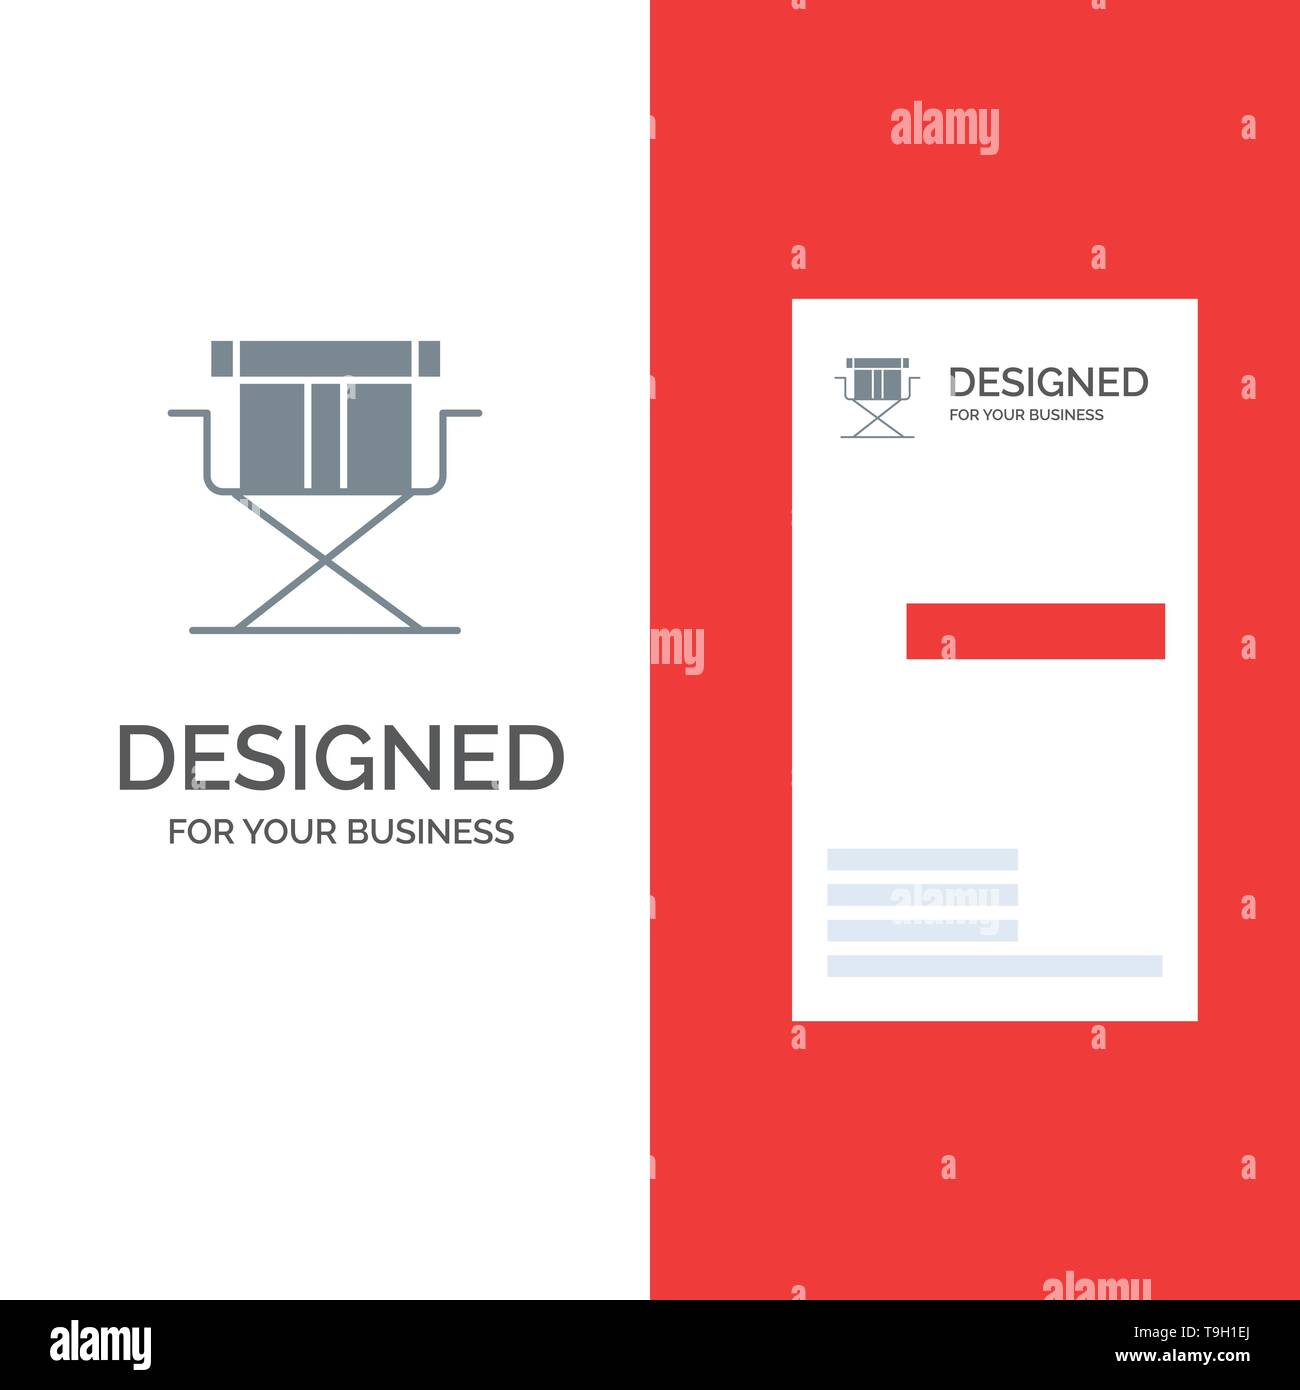 Foldable Card Template from c8.alamy.com